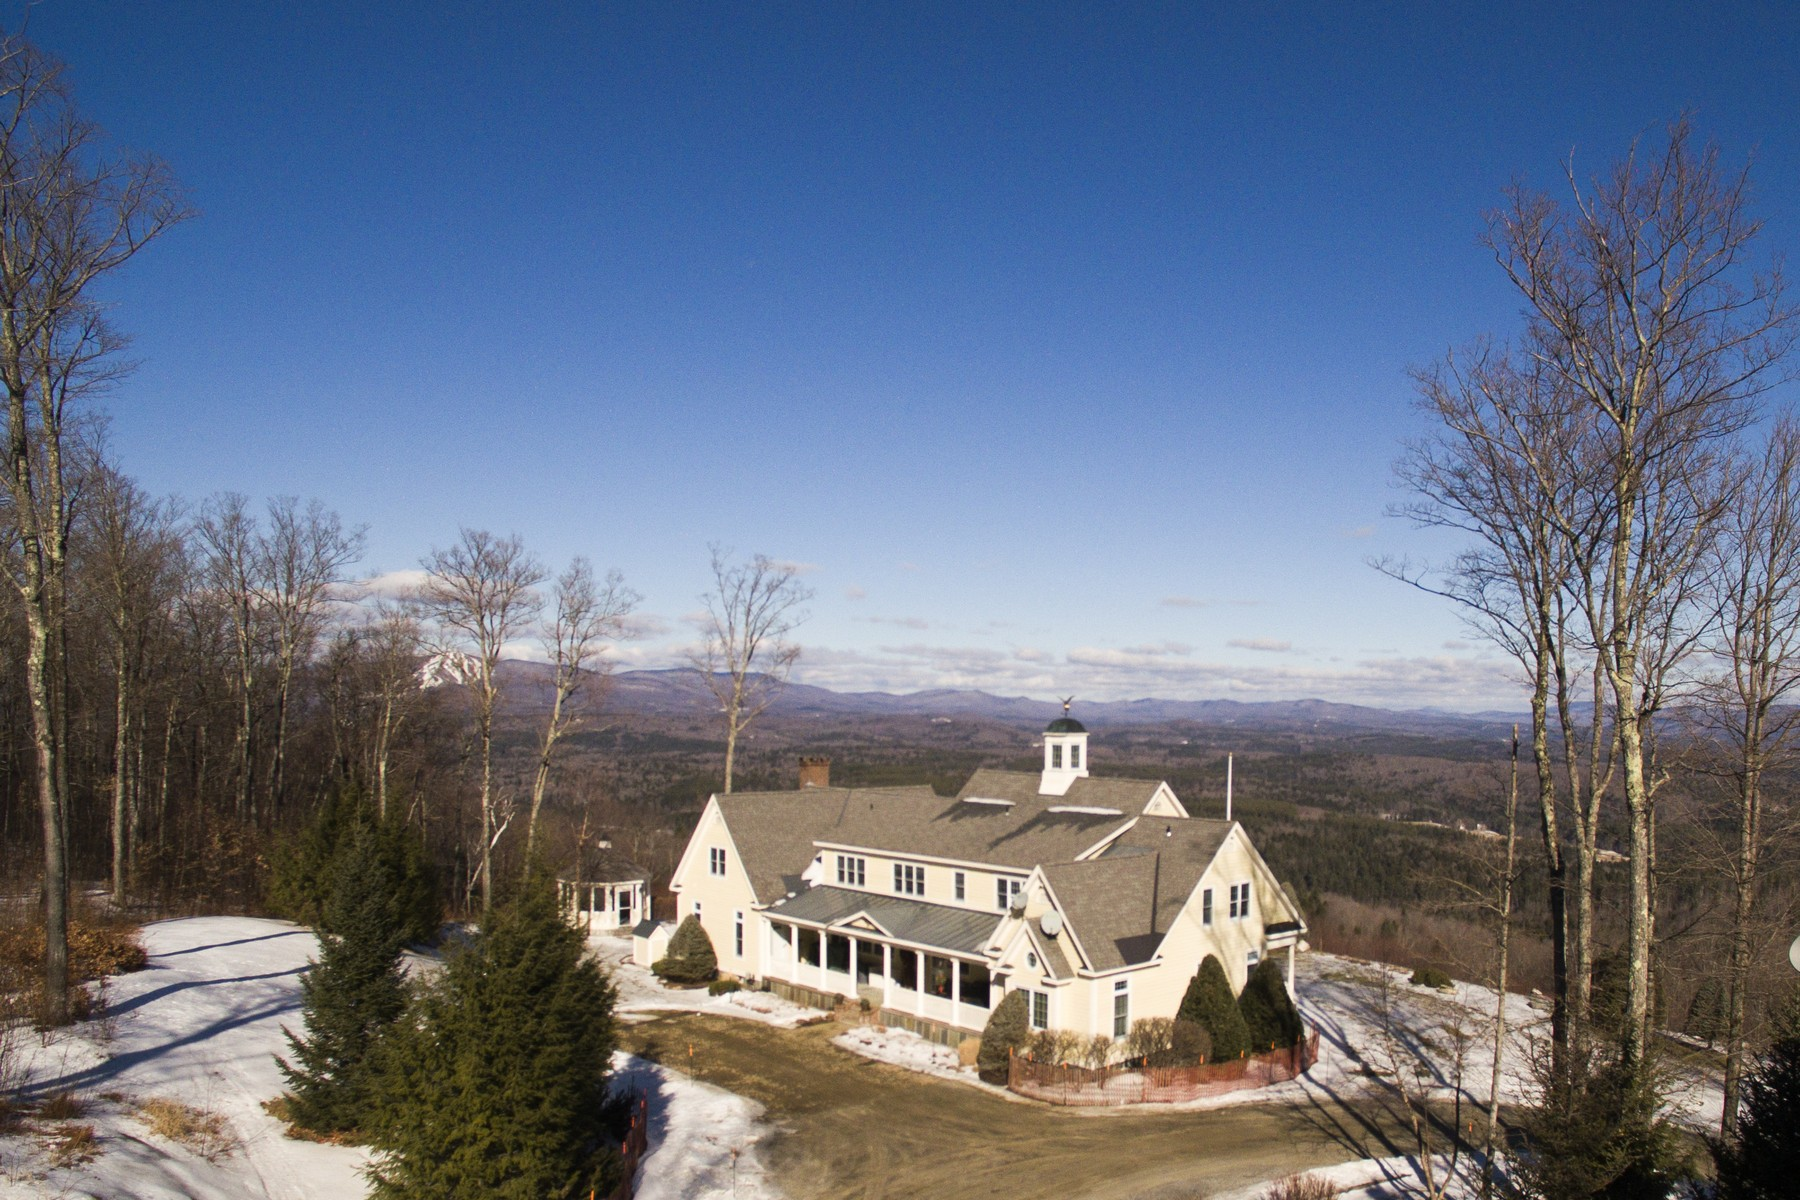 Casa Unifamiliar por un Venta en 1108 West Hill Road North, Jamaica Jamaica, Vermont, 05343 Estados Unidos